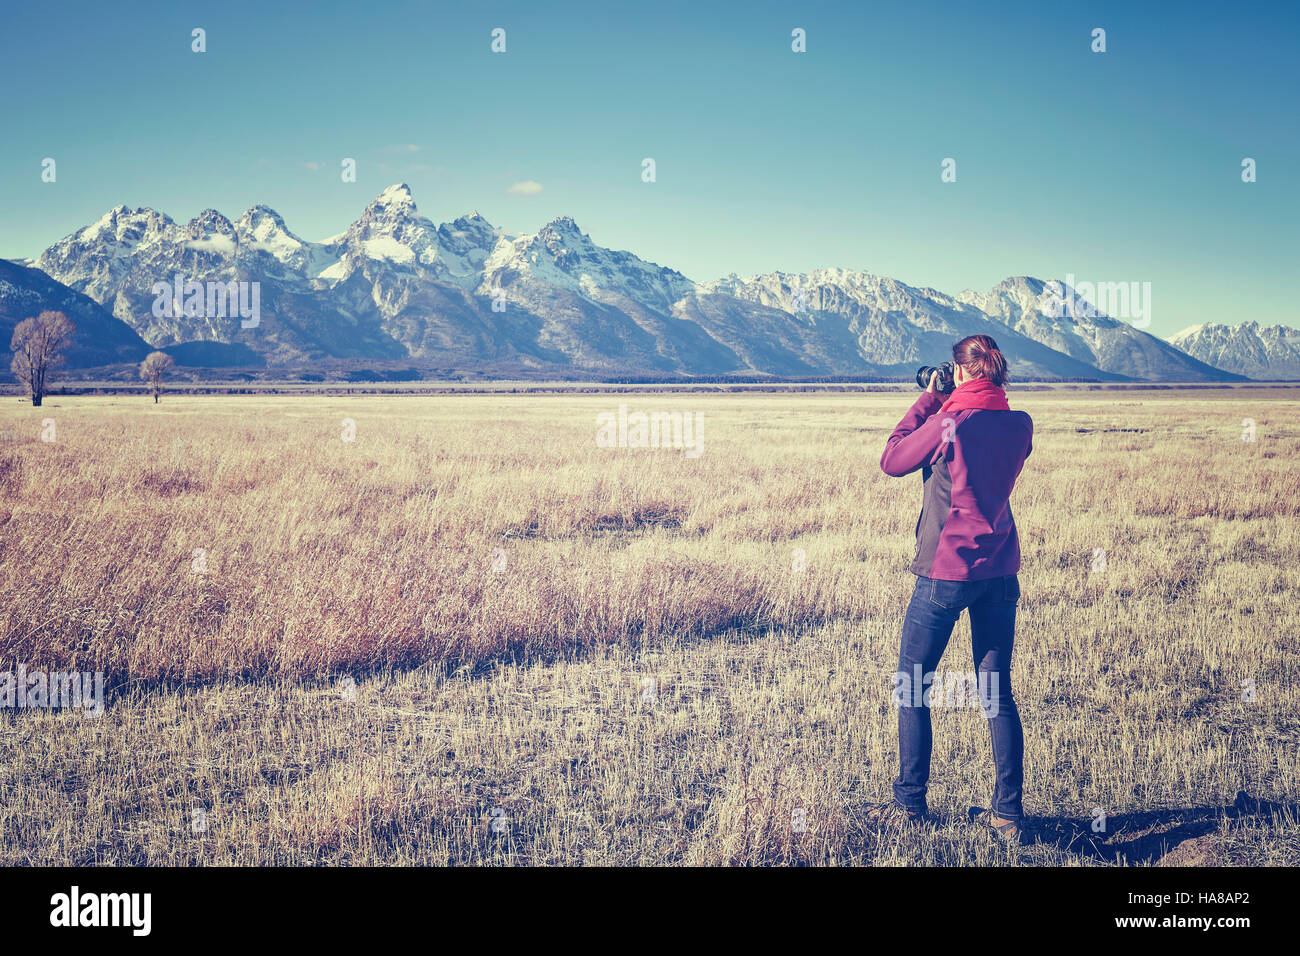 Vintage toned female fit hiker taking pictures with DSLR camera in the Grand Teton National Park, Wyoming, USA. - Stock Image